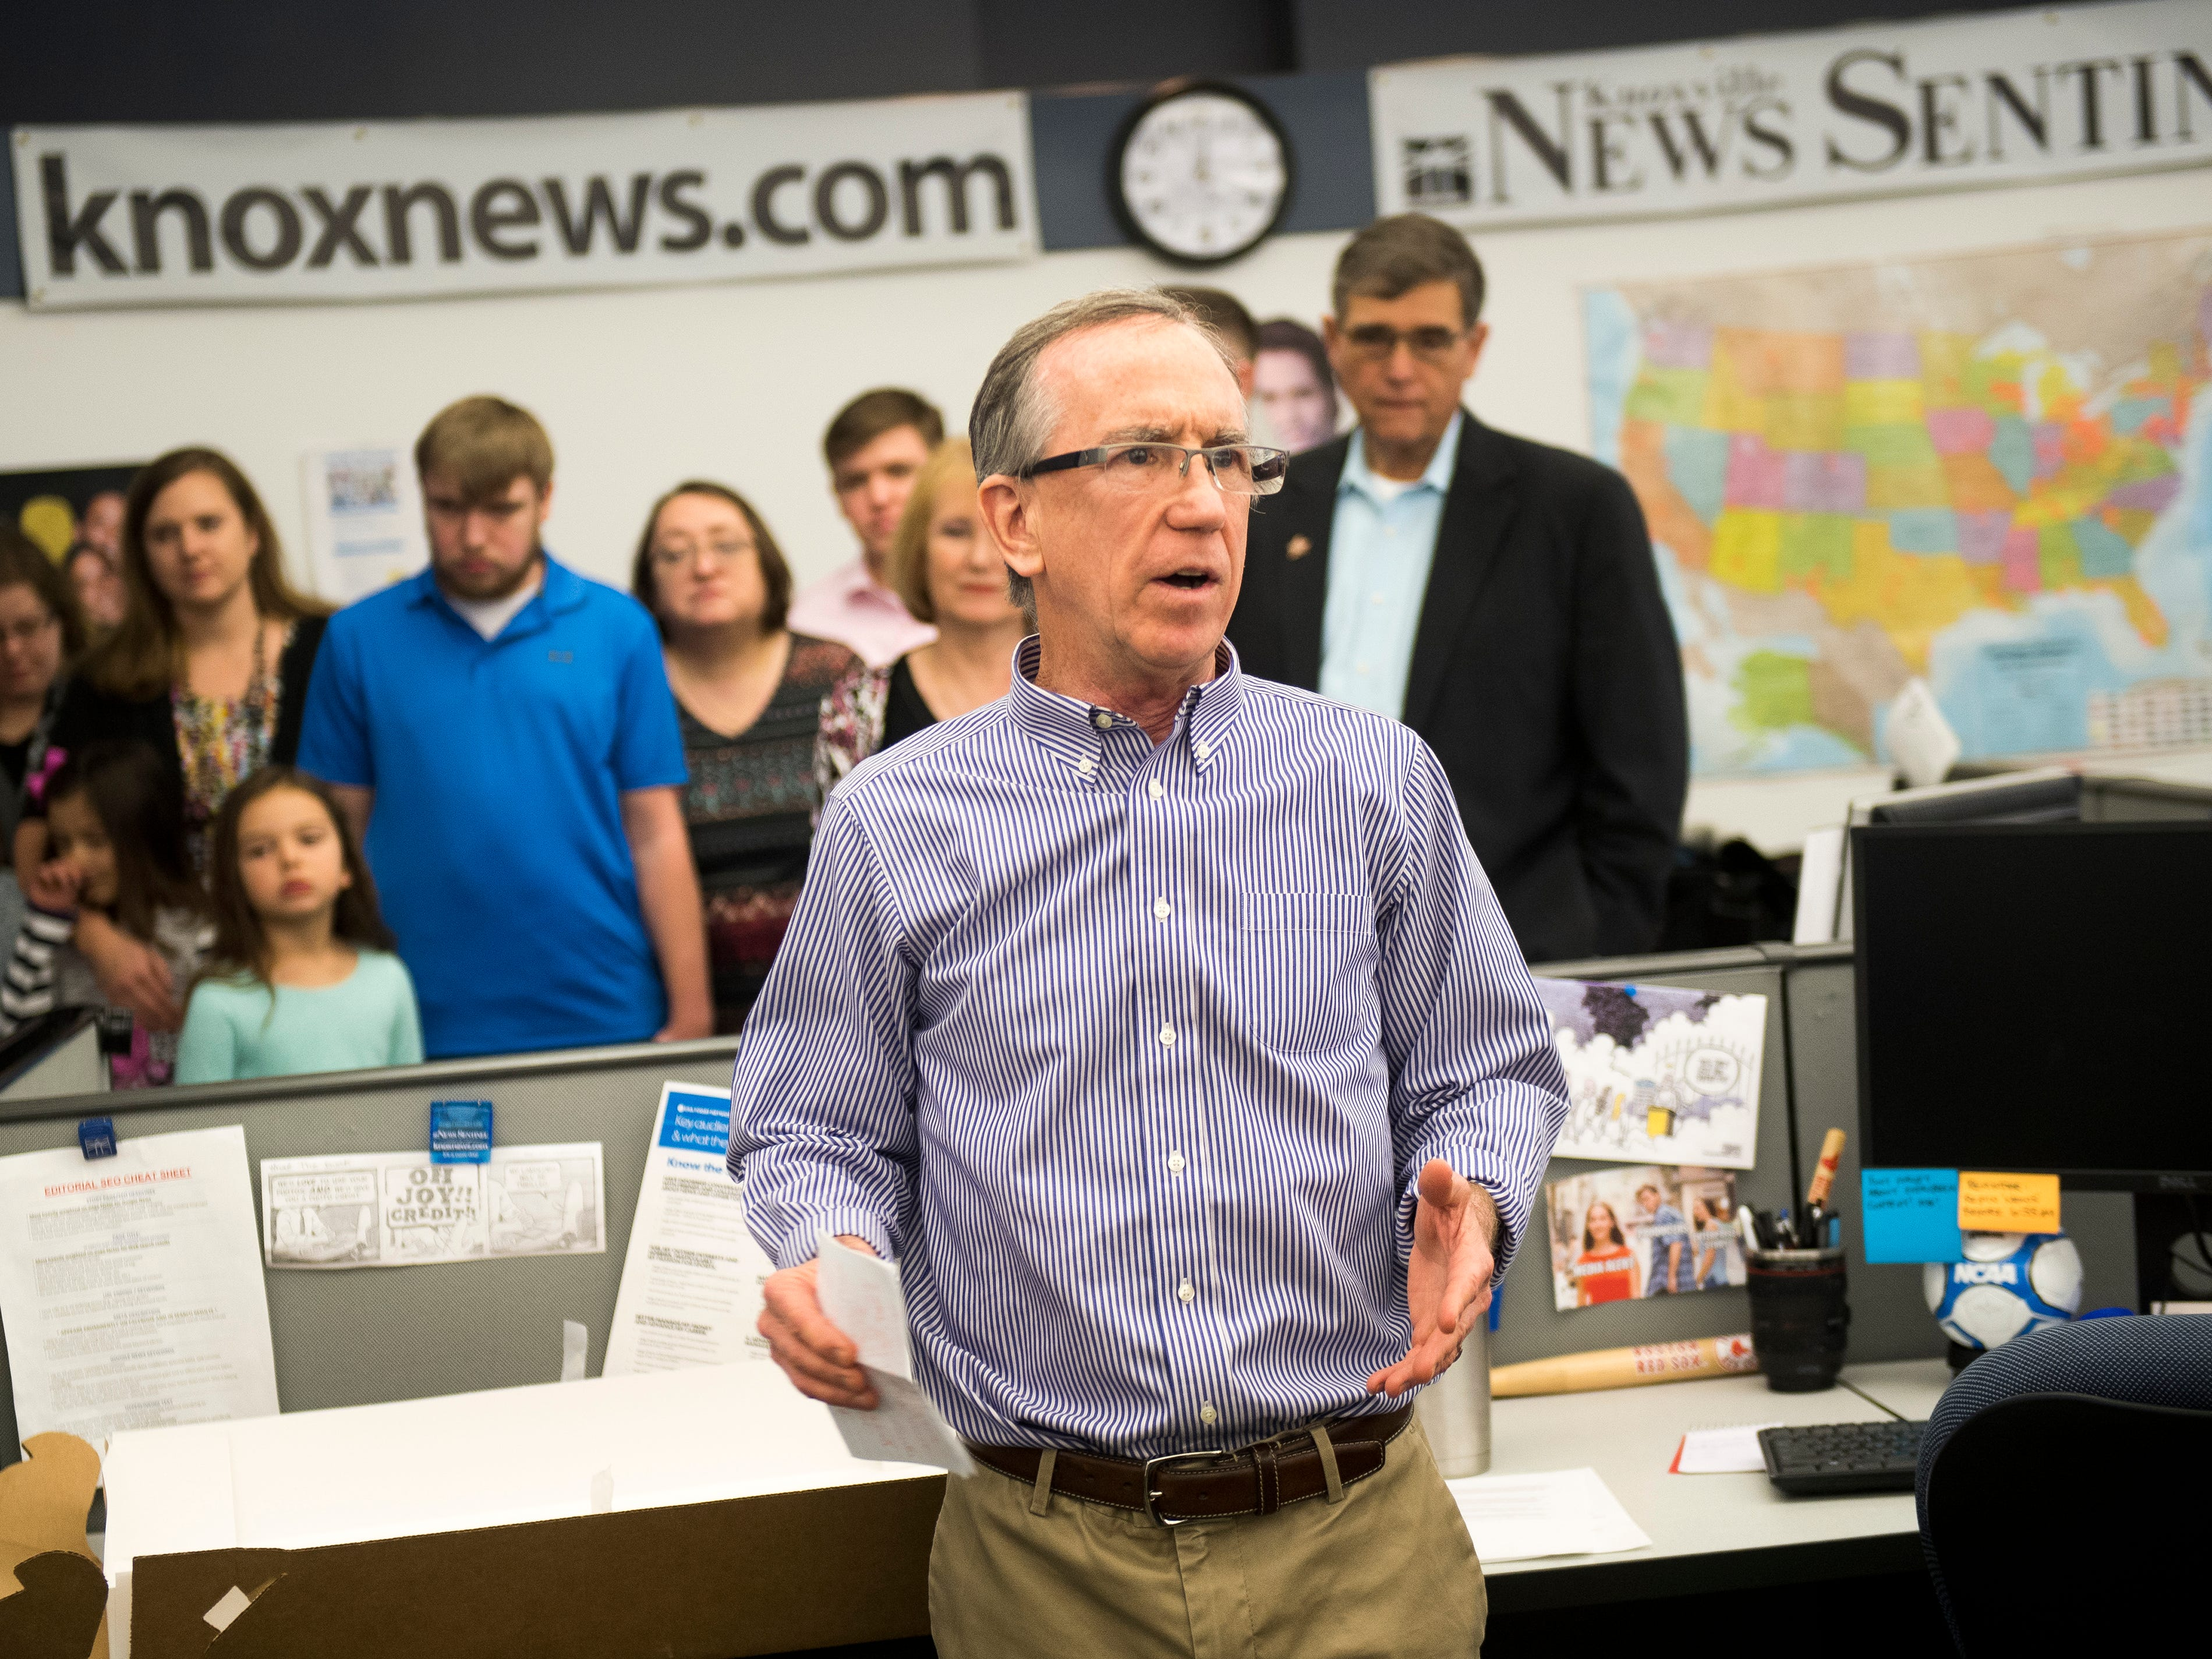 News Sentinel Executive Editor Jack McElroy, center, speaks as the newsroom celebrated the retirements of Mary Constantine, Jack Lail and Michael Patrick on Wednesday, January 2, 2019.